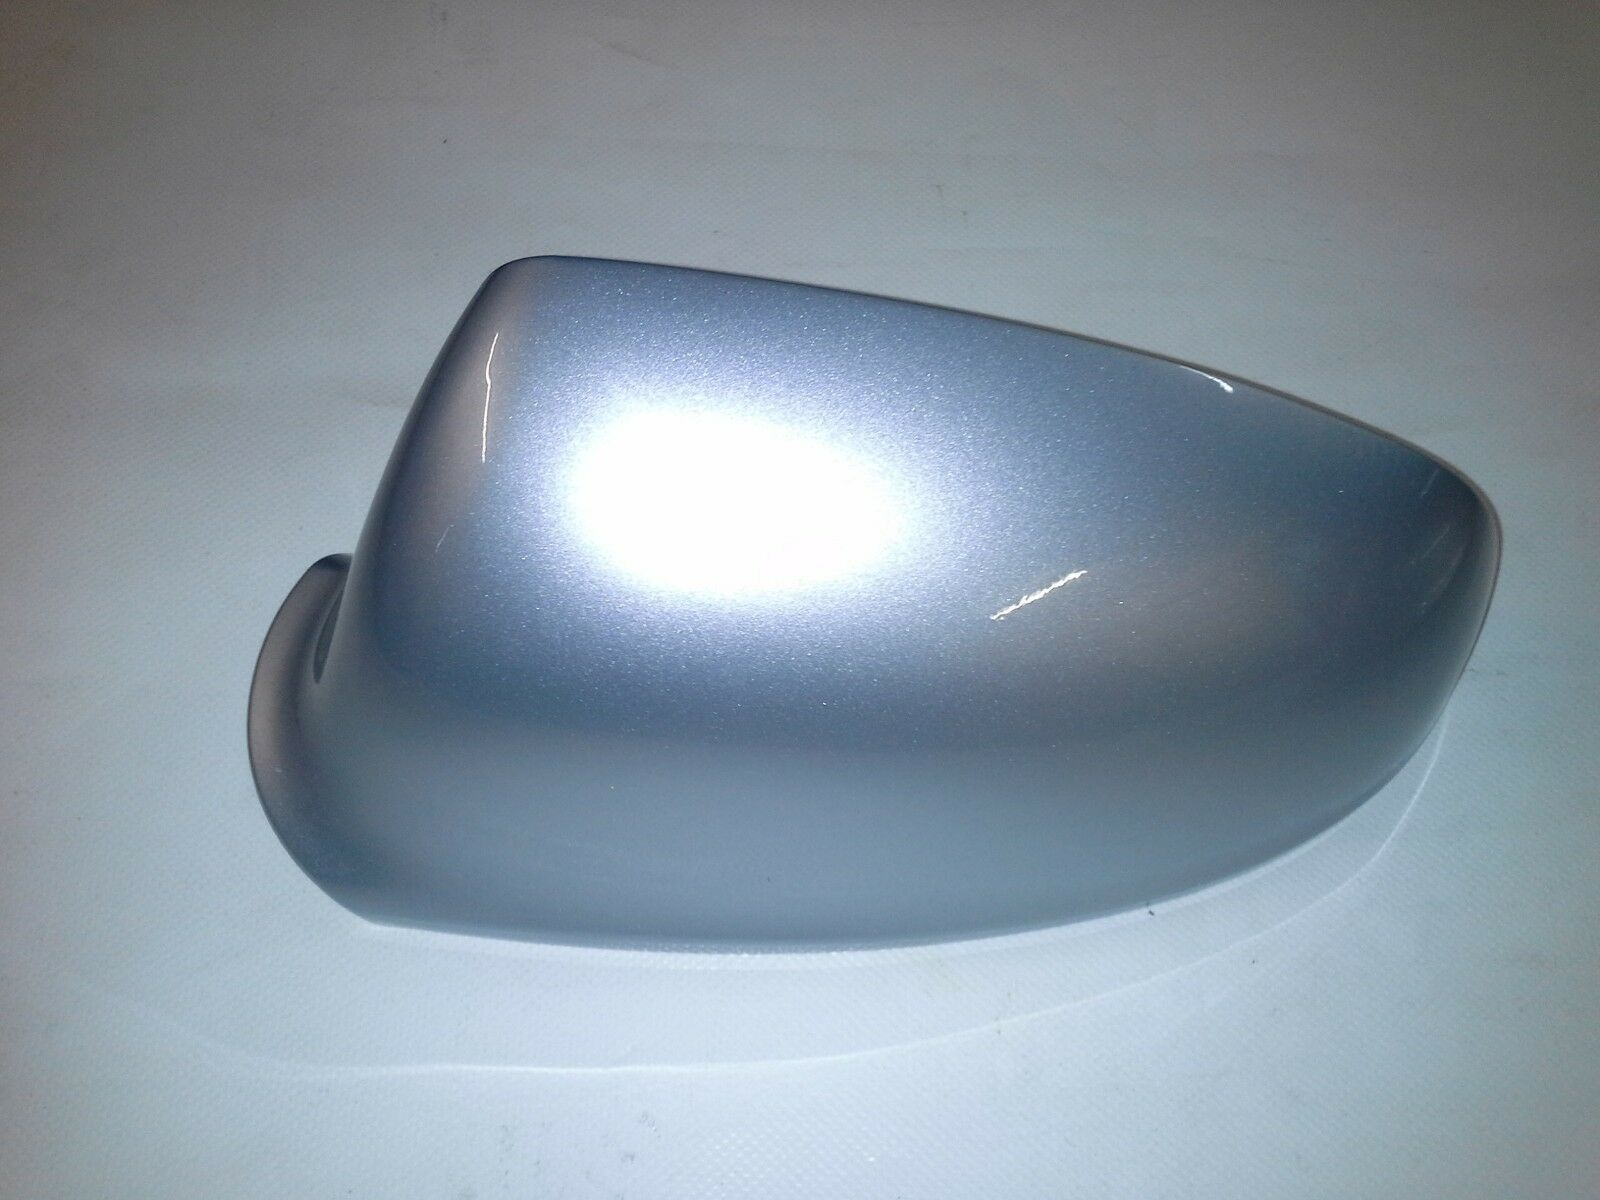 Vauxhall Astra J Passenger Side Magnetic Flip Chip Silver Door Wing Mirror Cover GWD